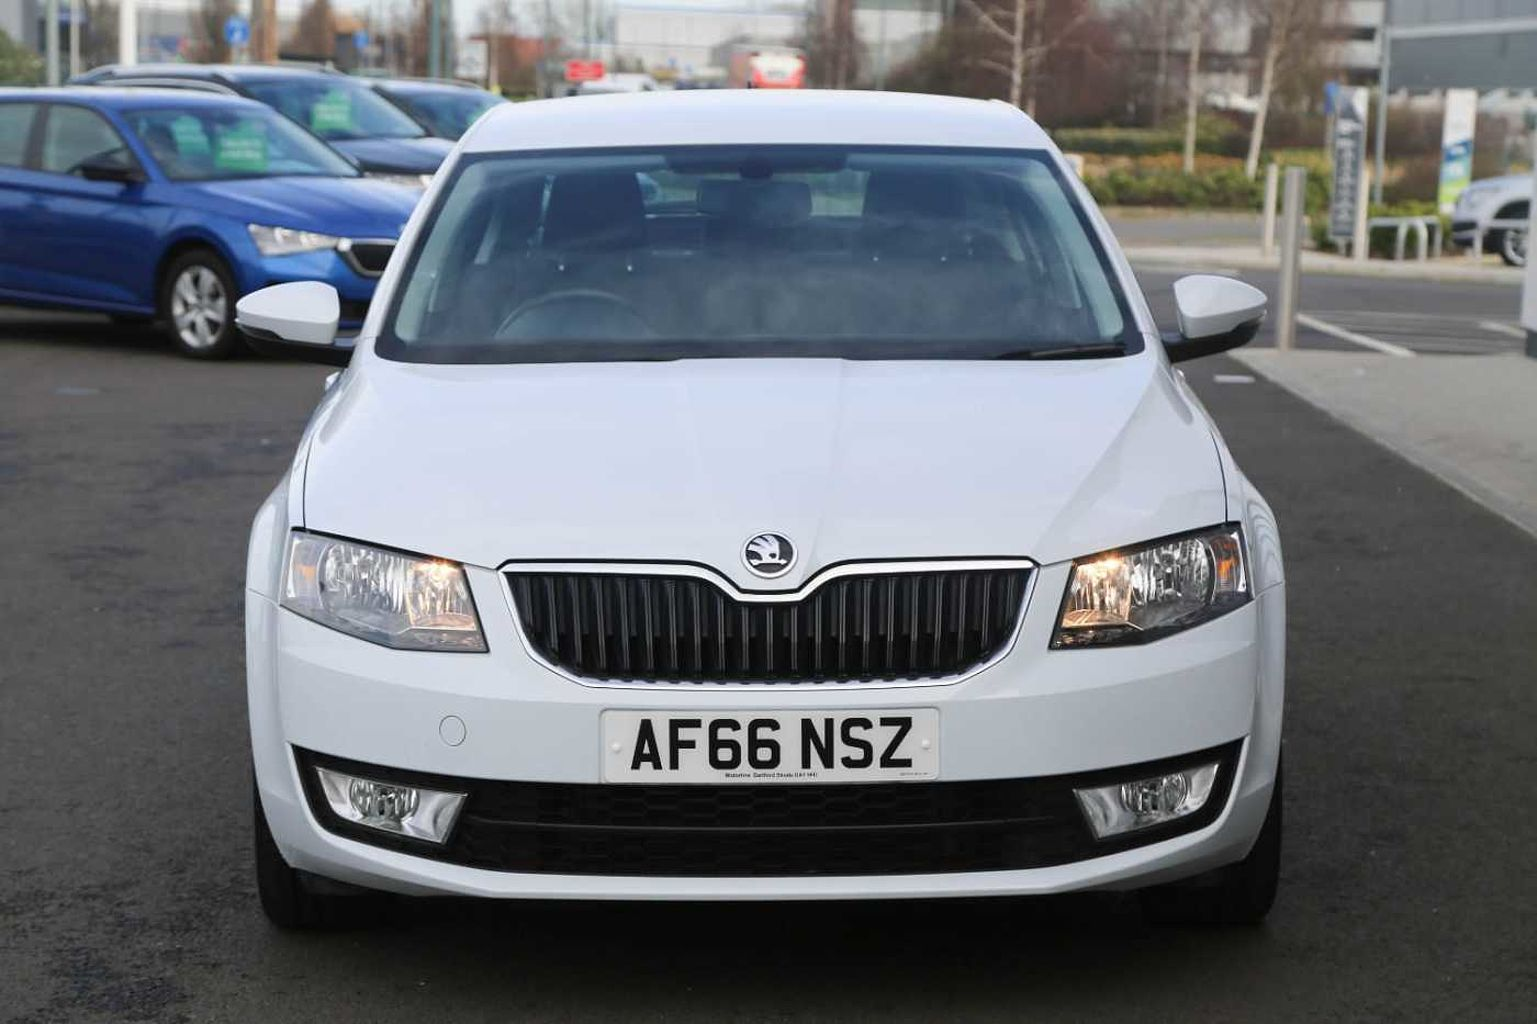 SKODA Octavia Hatch SE Business 1.6 TDI 110 PS